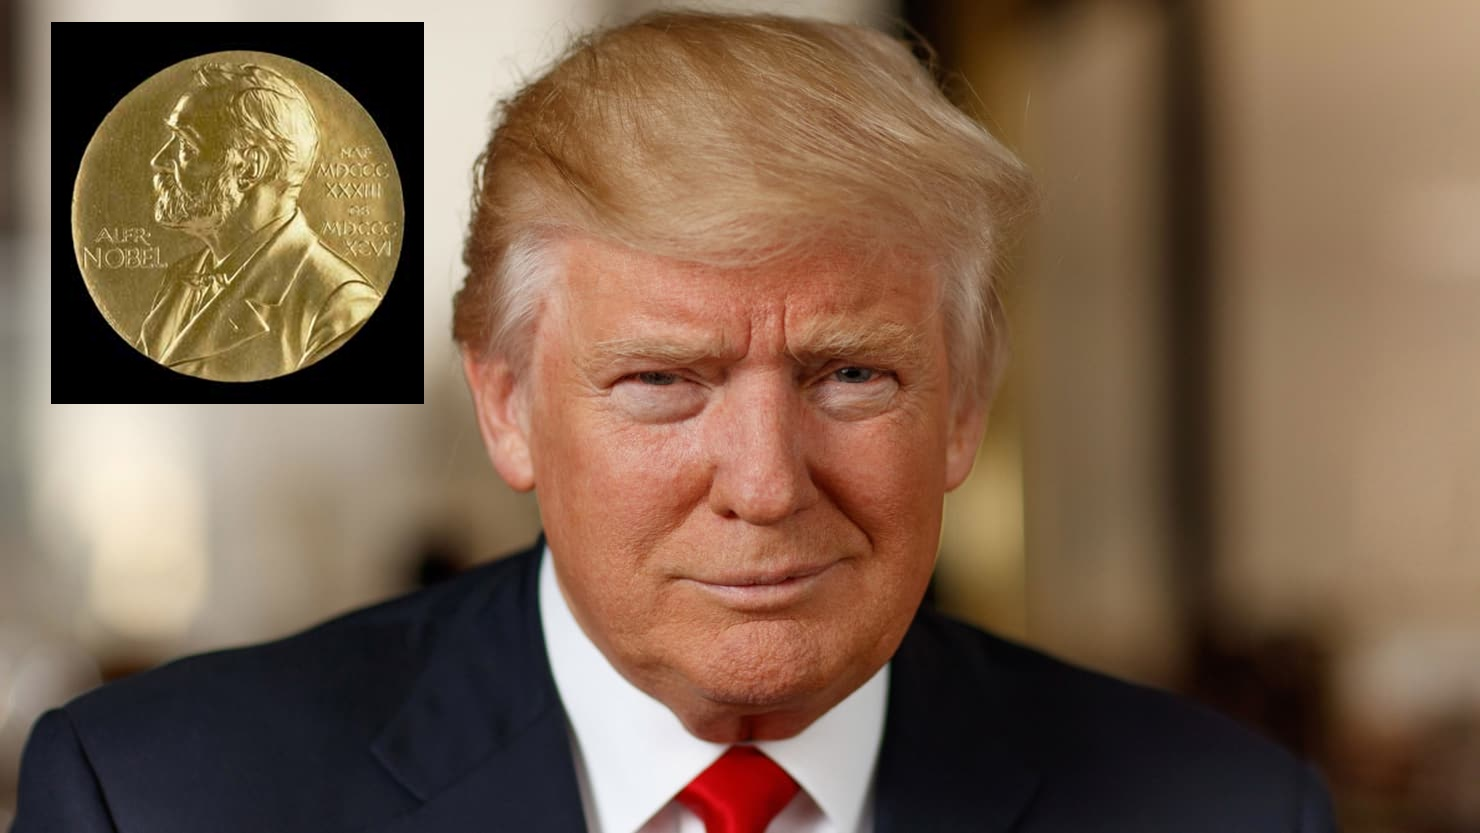 Trump Formally Nominated For The Nobel Peace Prize